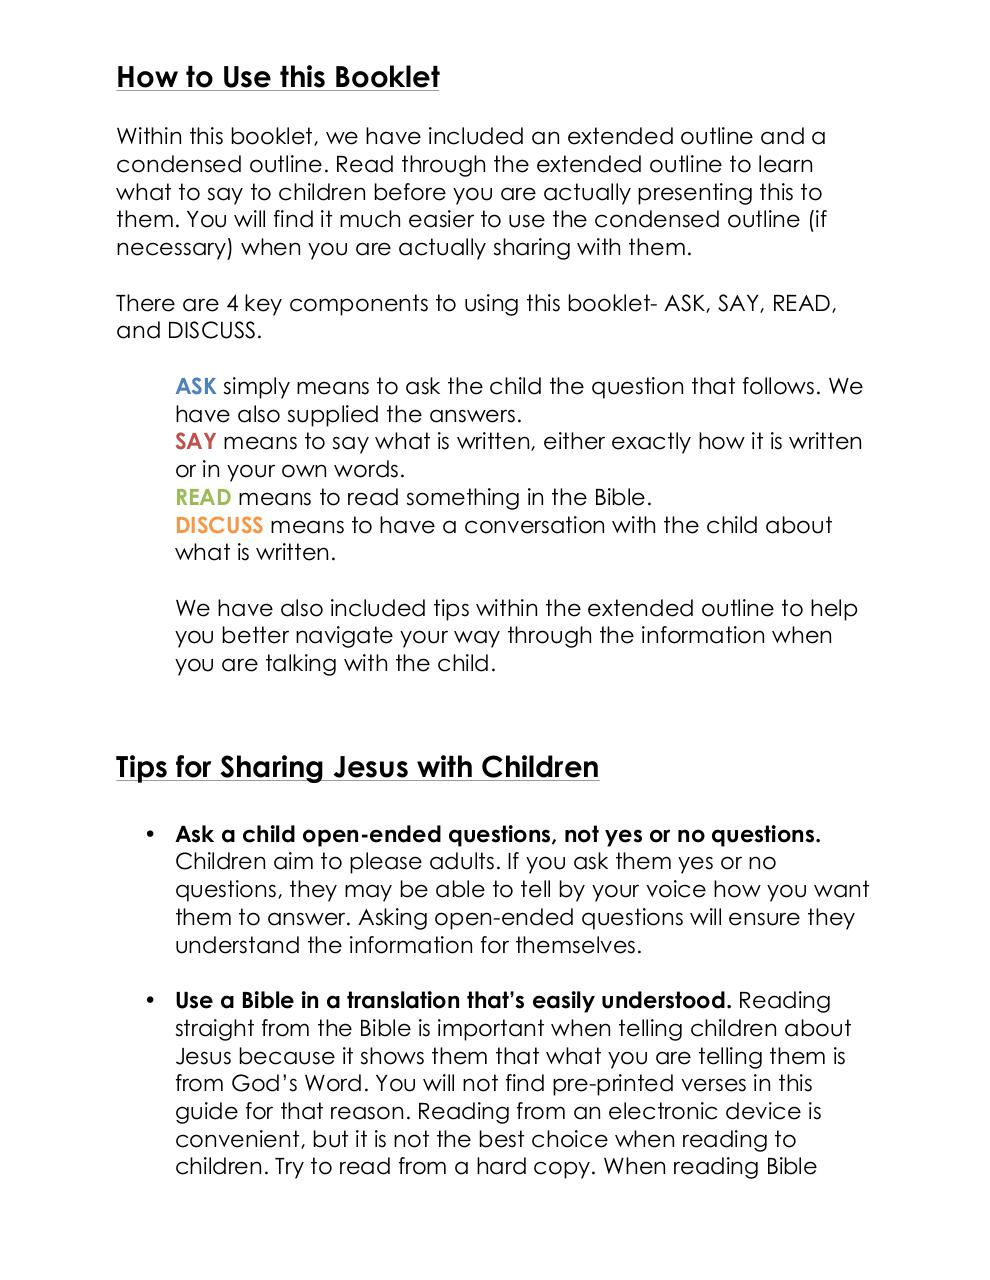 Sharing Jesus with Children (E-book).pdf - page 4/13